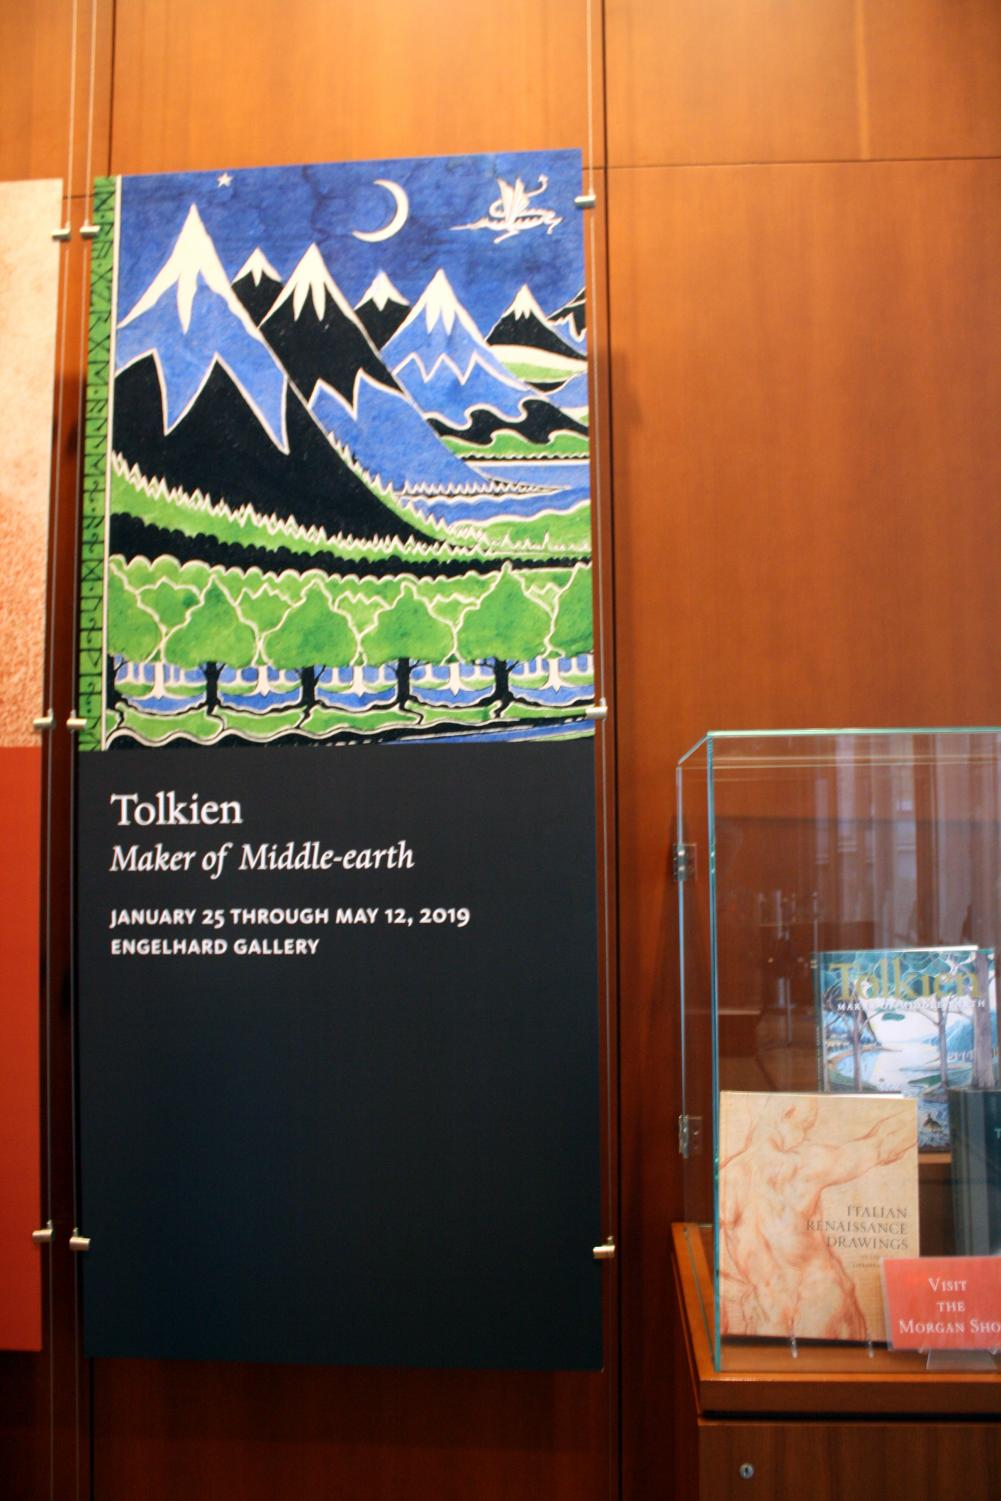 The Morgan's newest exhibit takes viewers into the whimsical world of J.R.R. Tolkien.